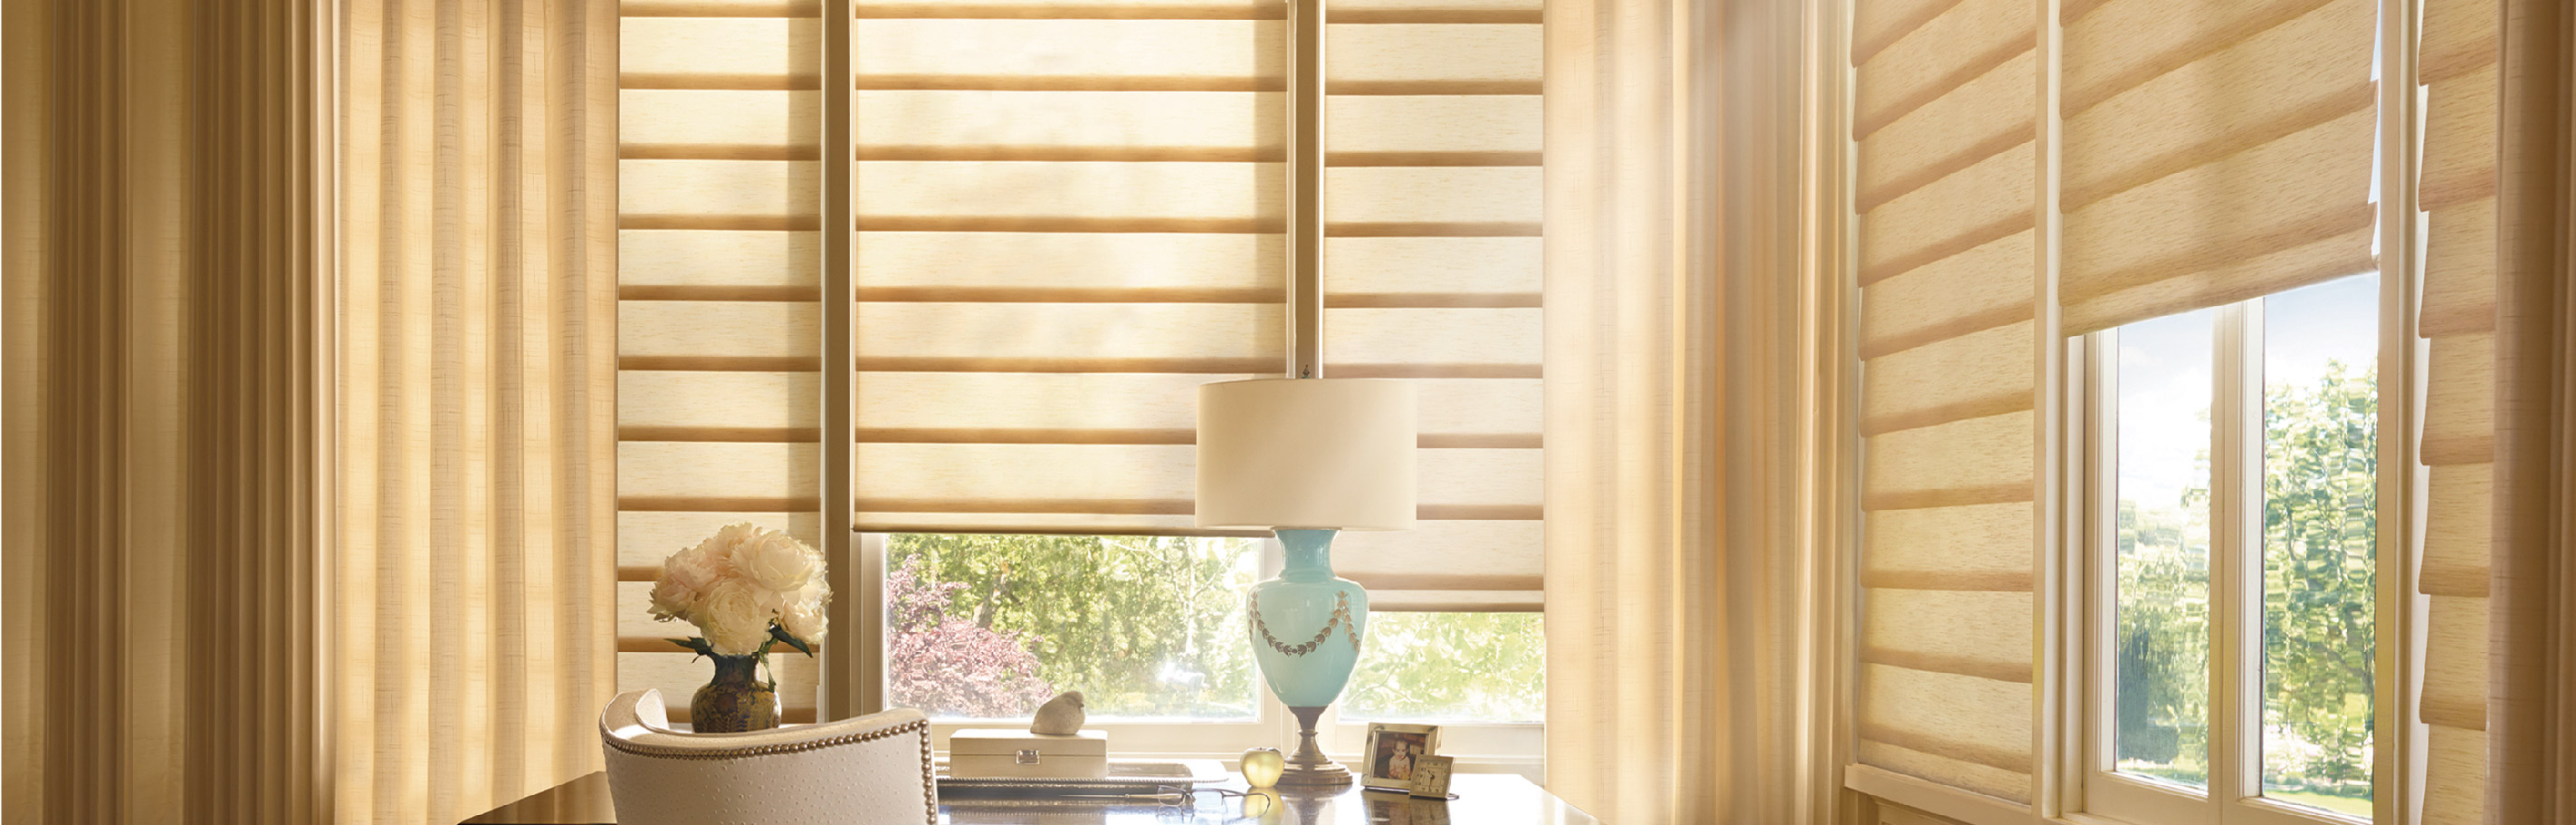 Luxaflex - Products - Softshades and Fabrics - Modern Roman Shades Bottom 2